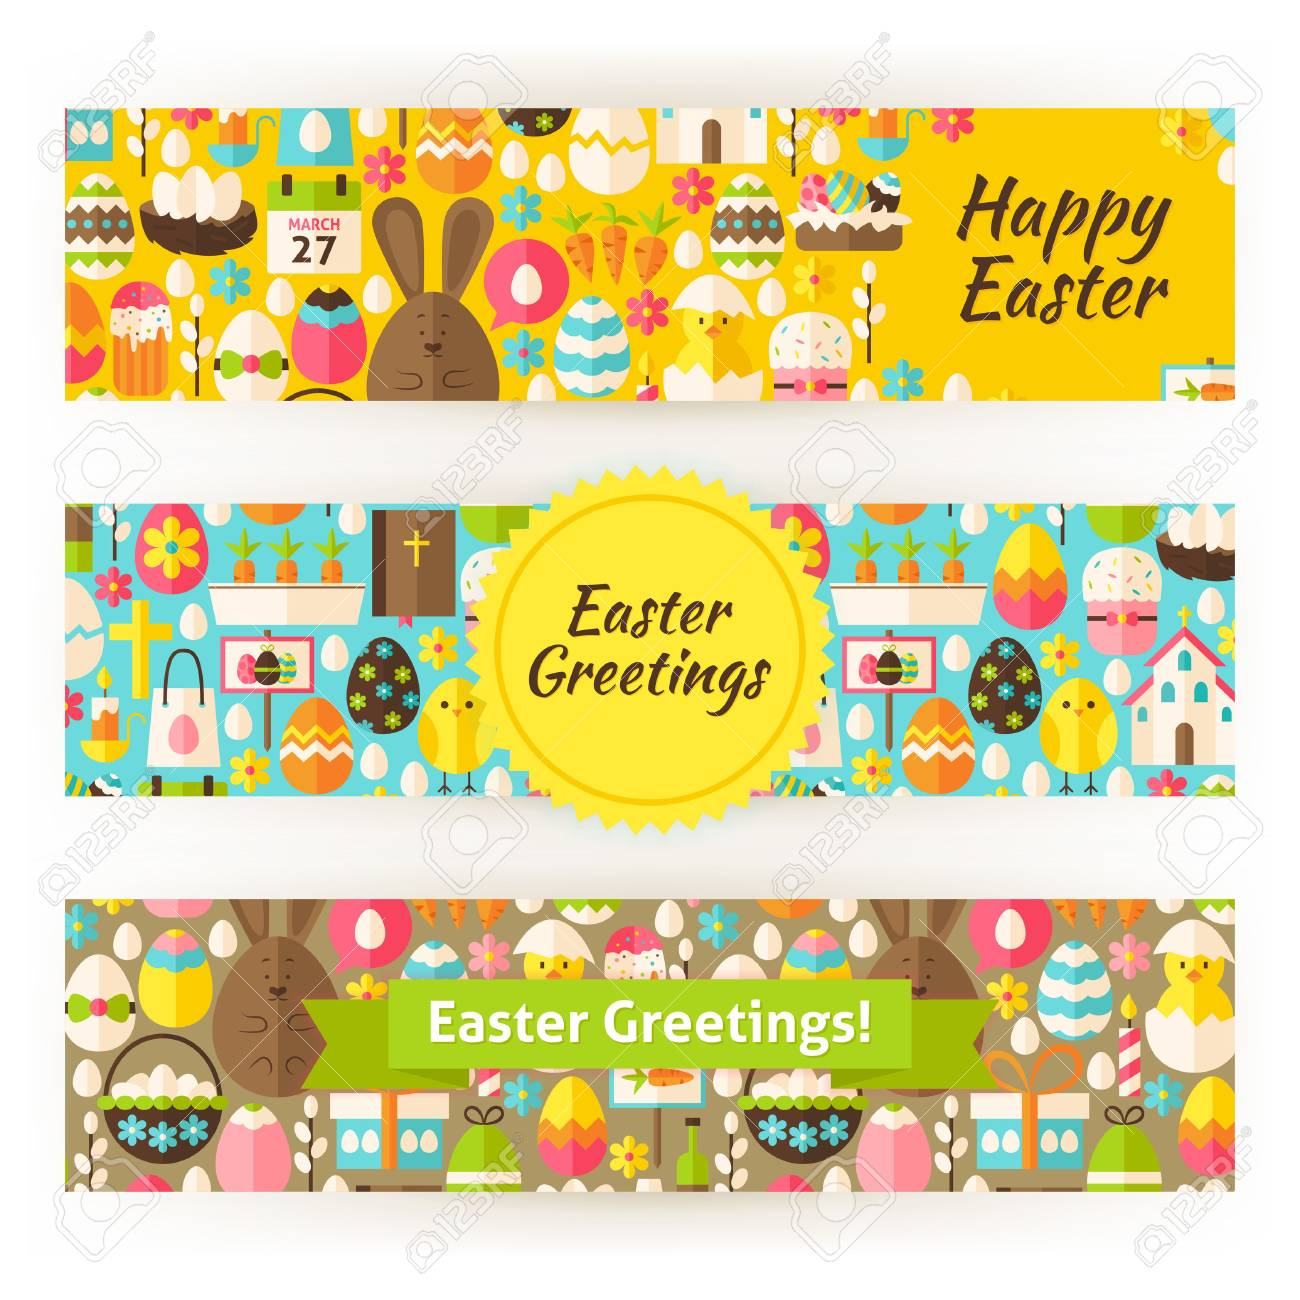 Easter Greetings Template Banners Set In Modern Style Flat Design